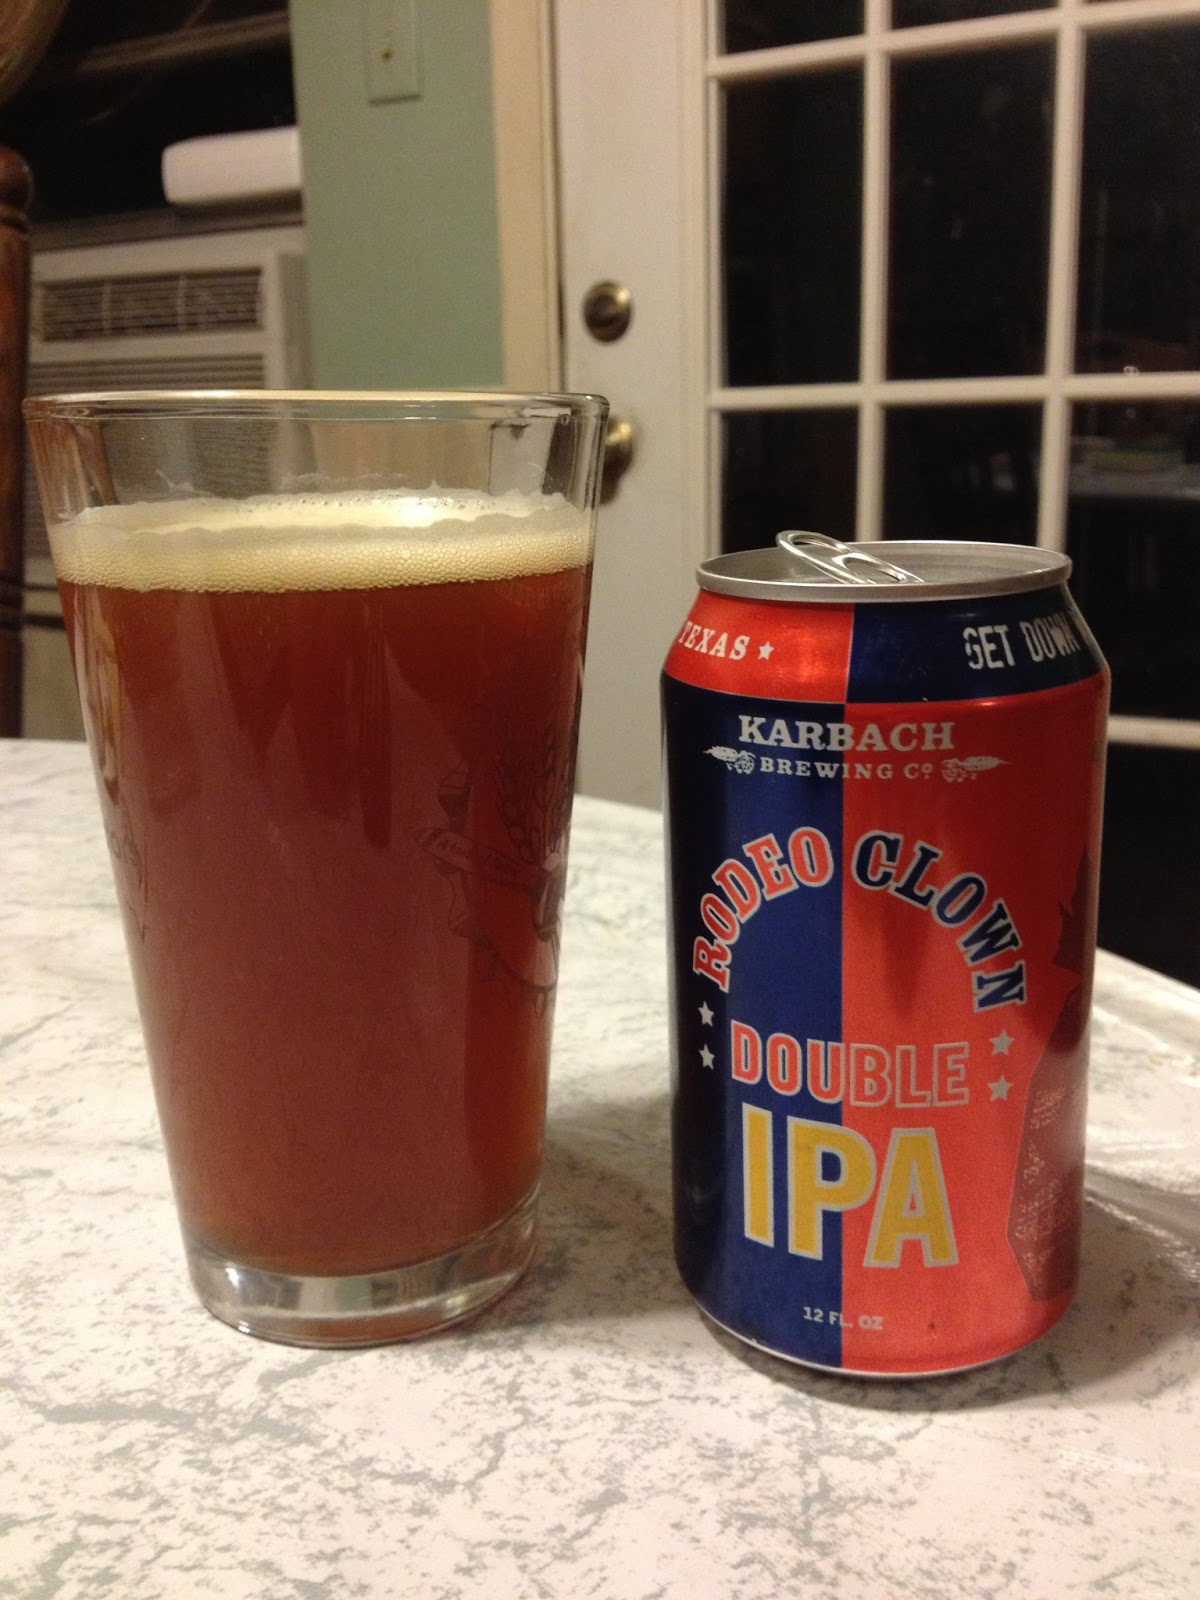 Wort S Going On Here Karbach Rodeo Clown Double Ipa Review